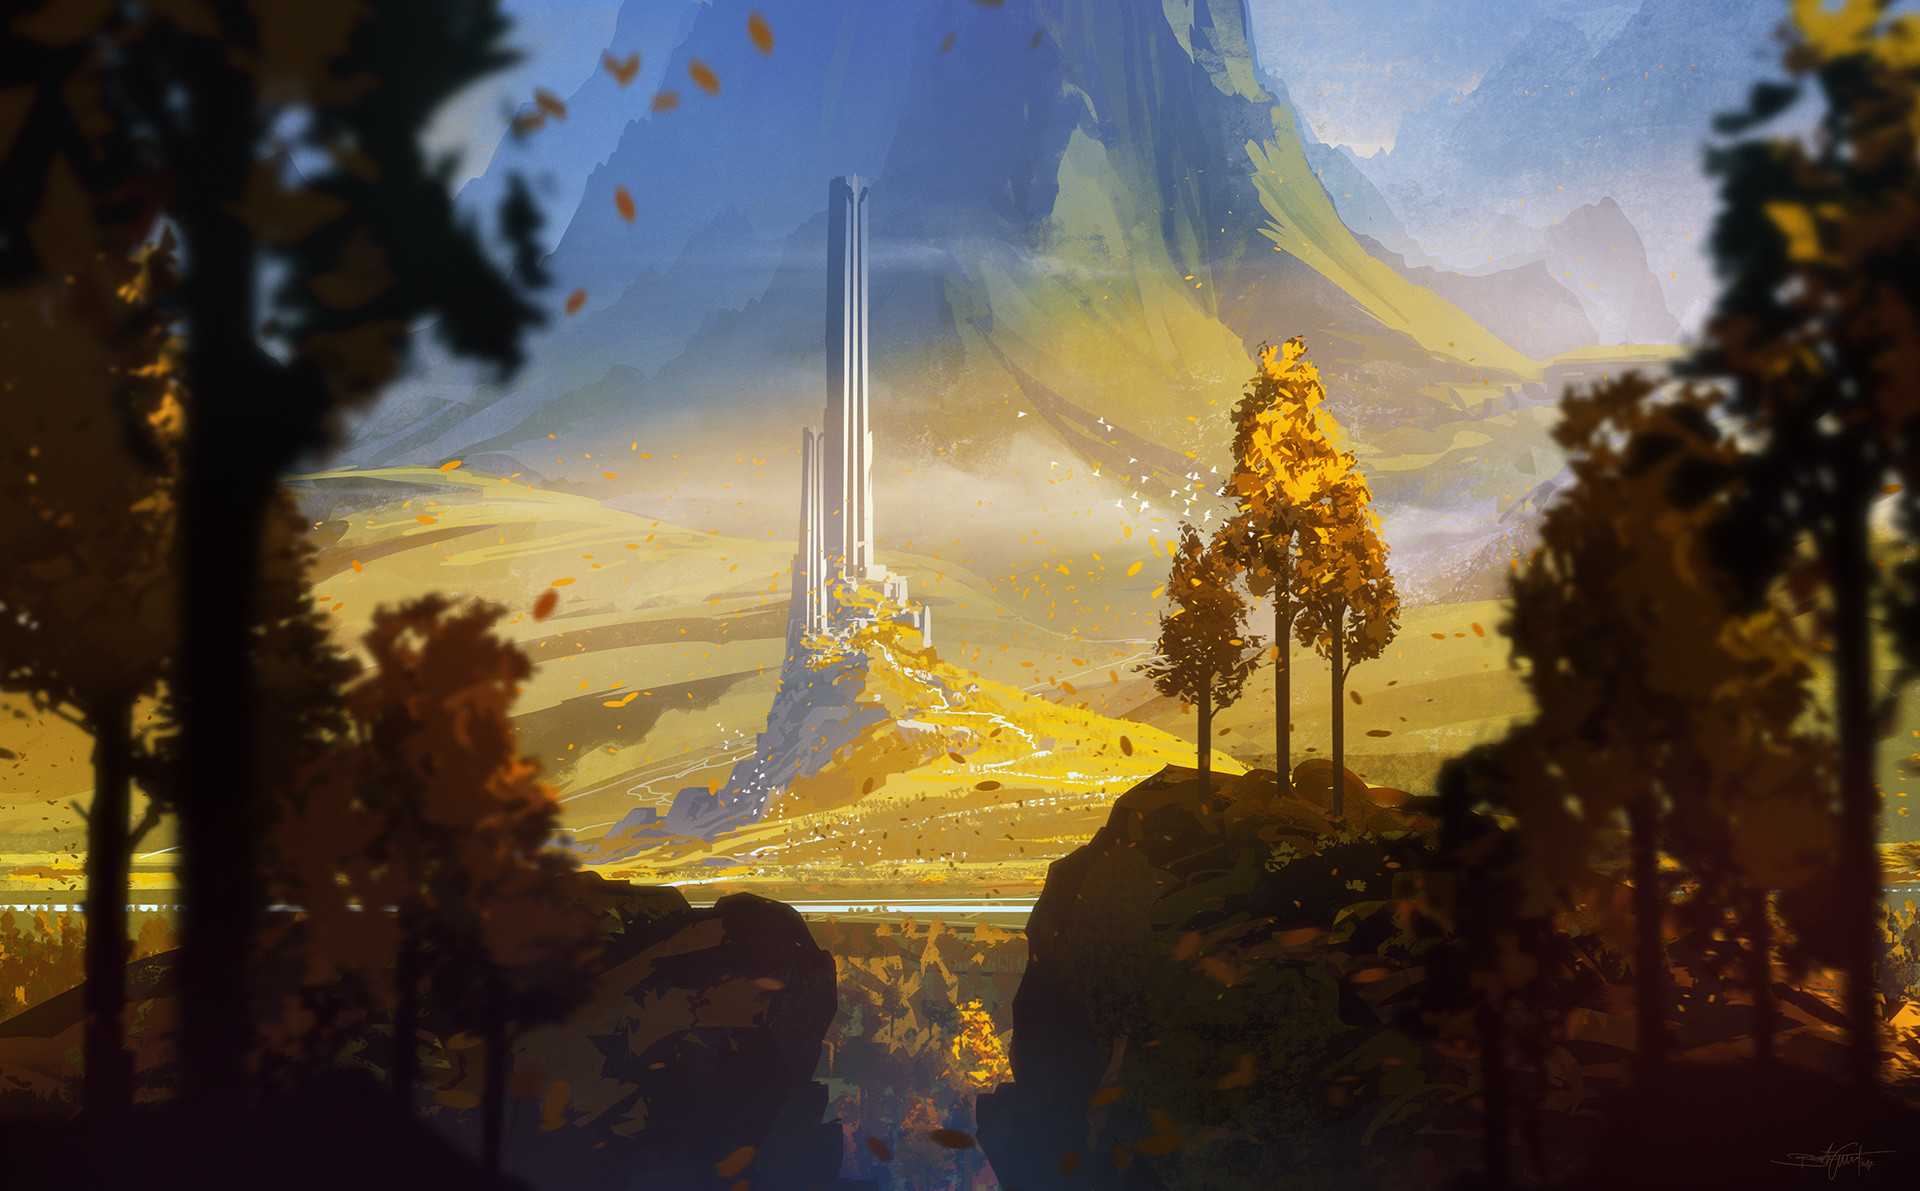 Bastien grivet from the hill